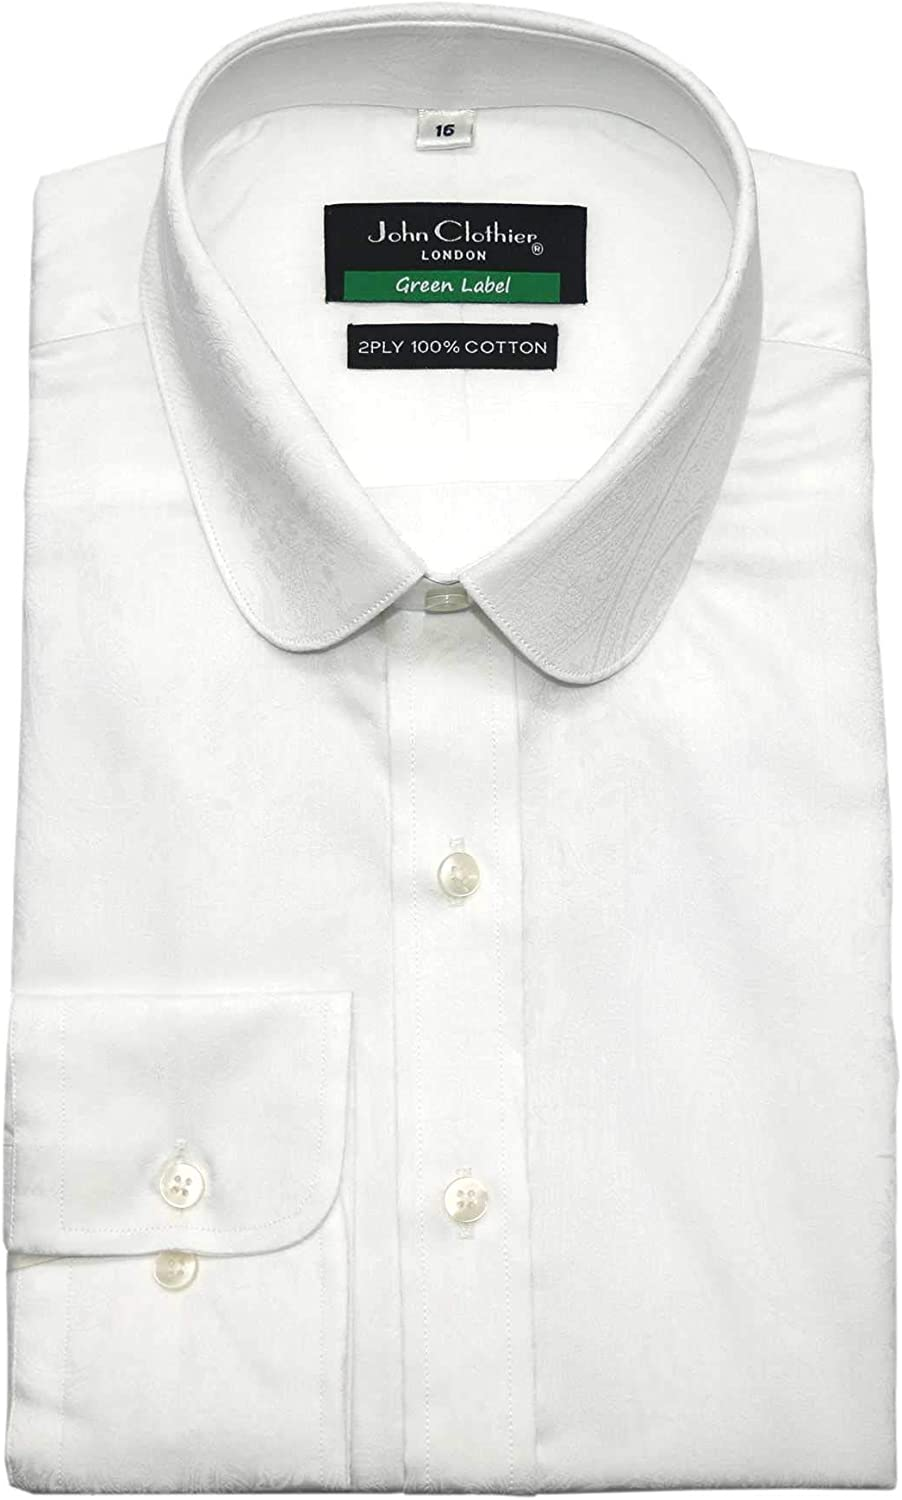 Mens Penny Collar Shirt White Floral Jacquard Texture Peaky Blinders Round Club Thomas Shelby Cotton 800-68